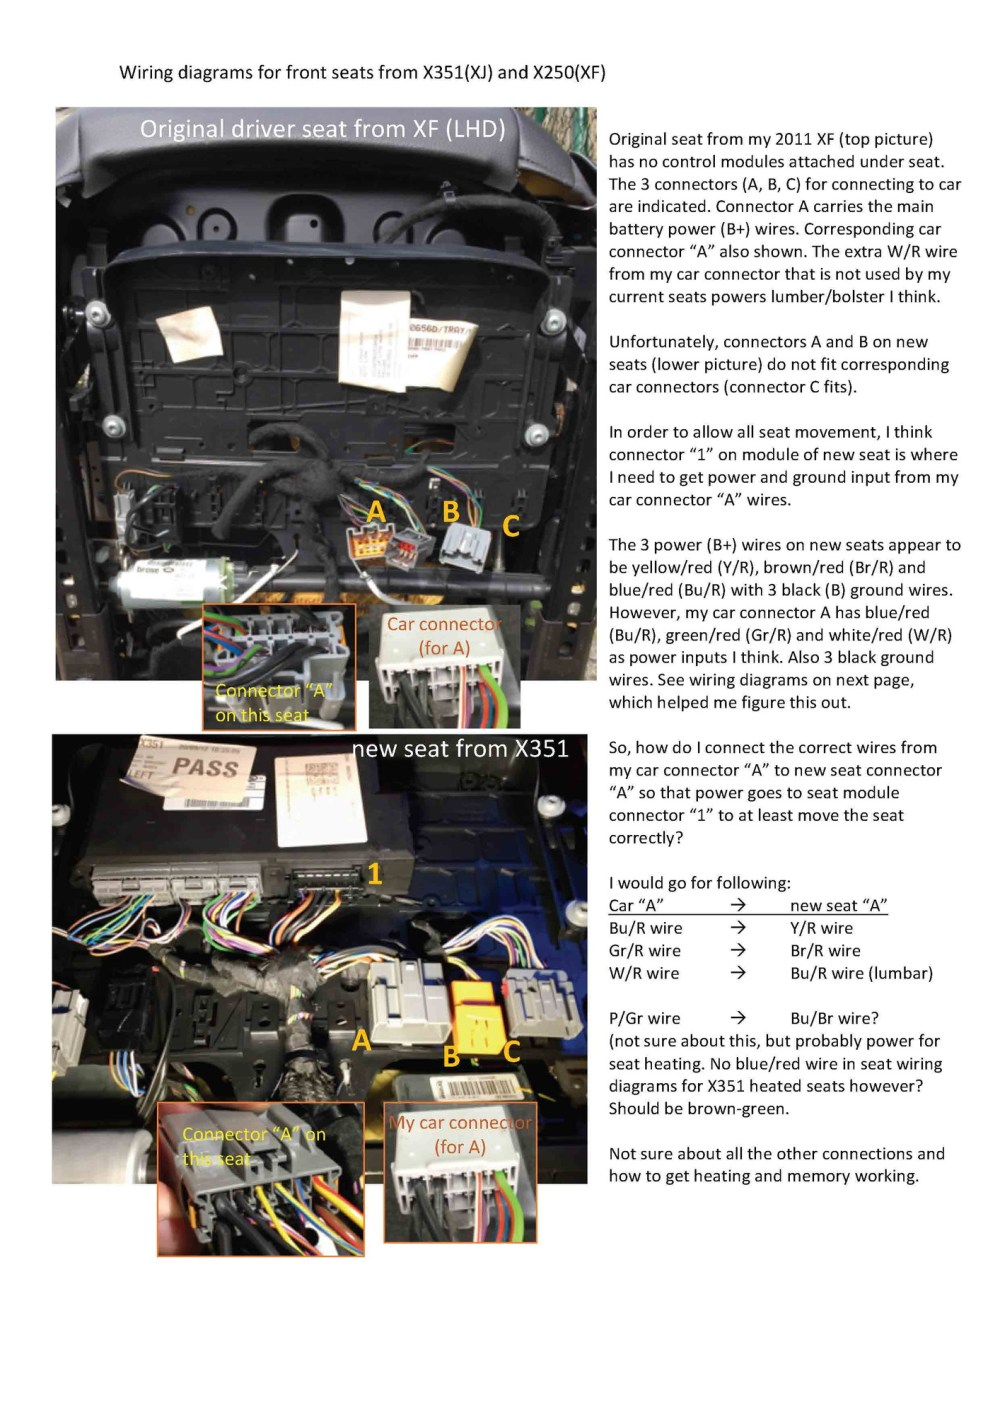 medium resolution of front seat upgrade wiring problems need advice jaguar forums diagram for stype front seats jaguar forums jaguar enthusiasts